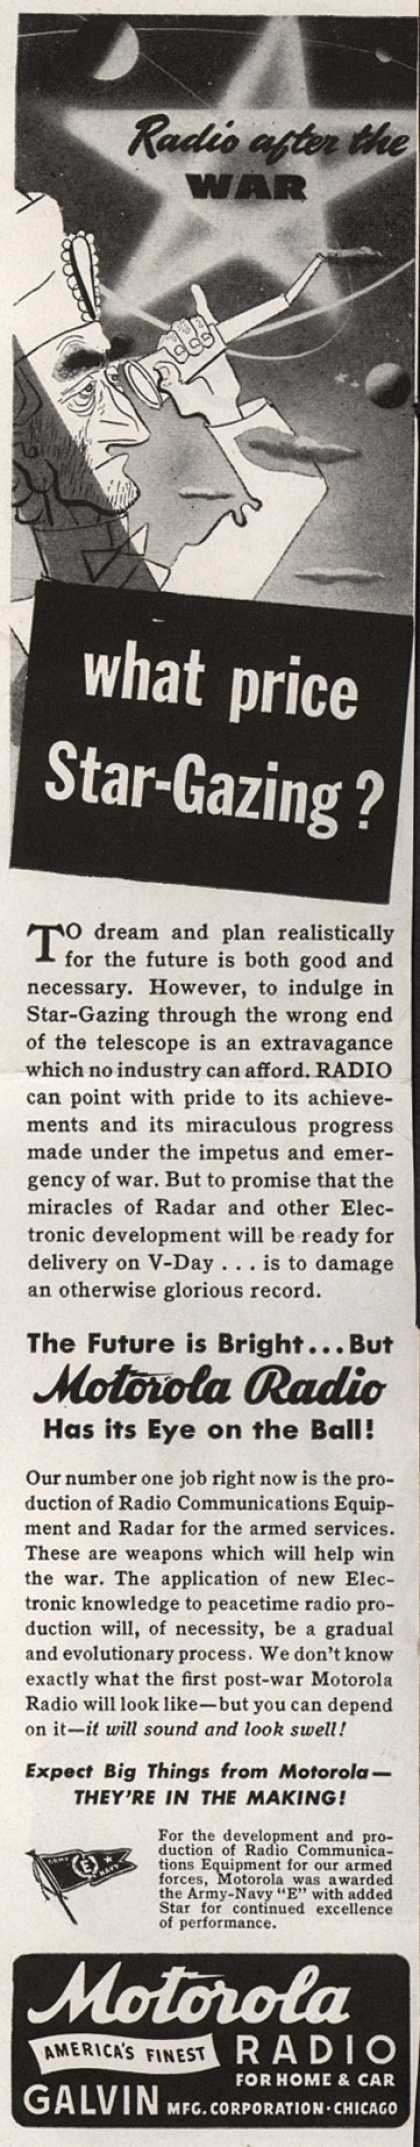 Motorola Radio's Radio – Radio after the War... what price Star-Gazing? (1943)